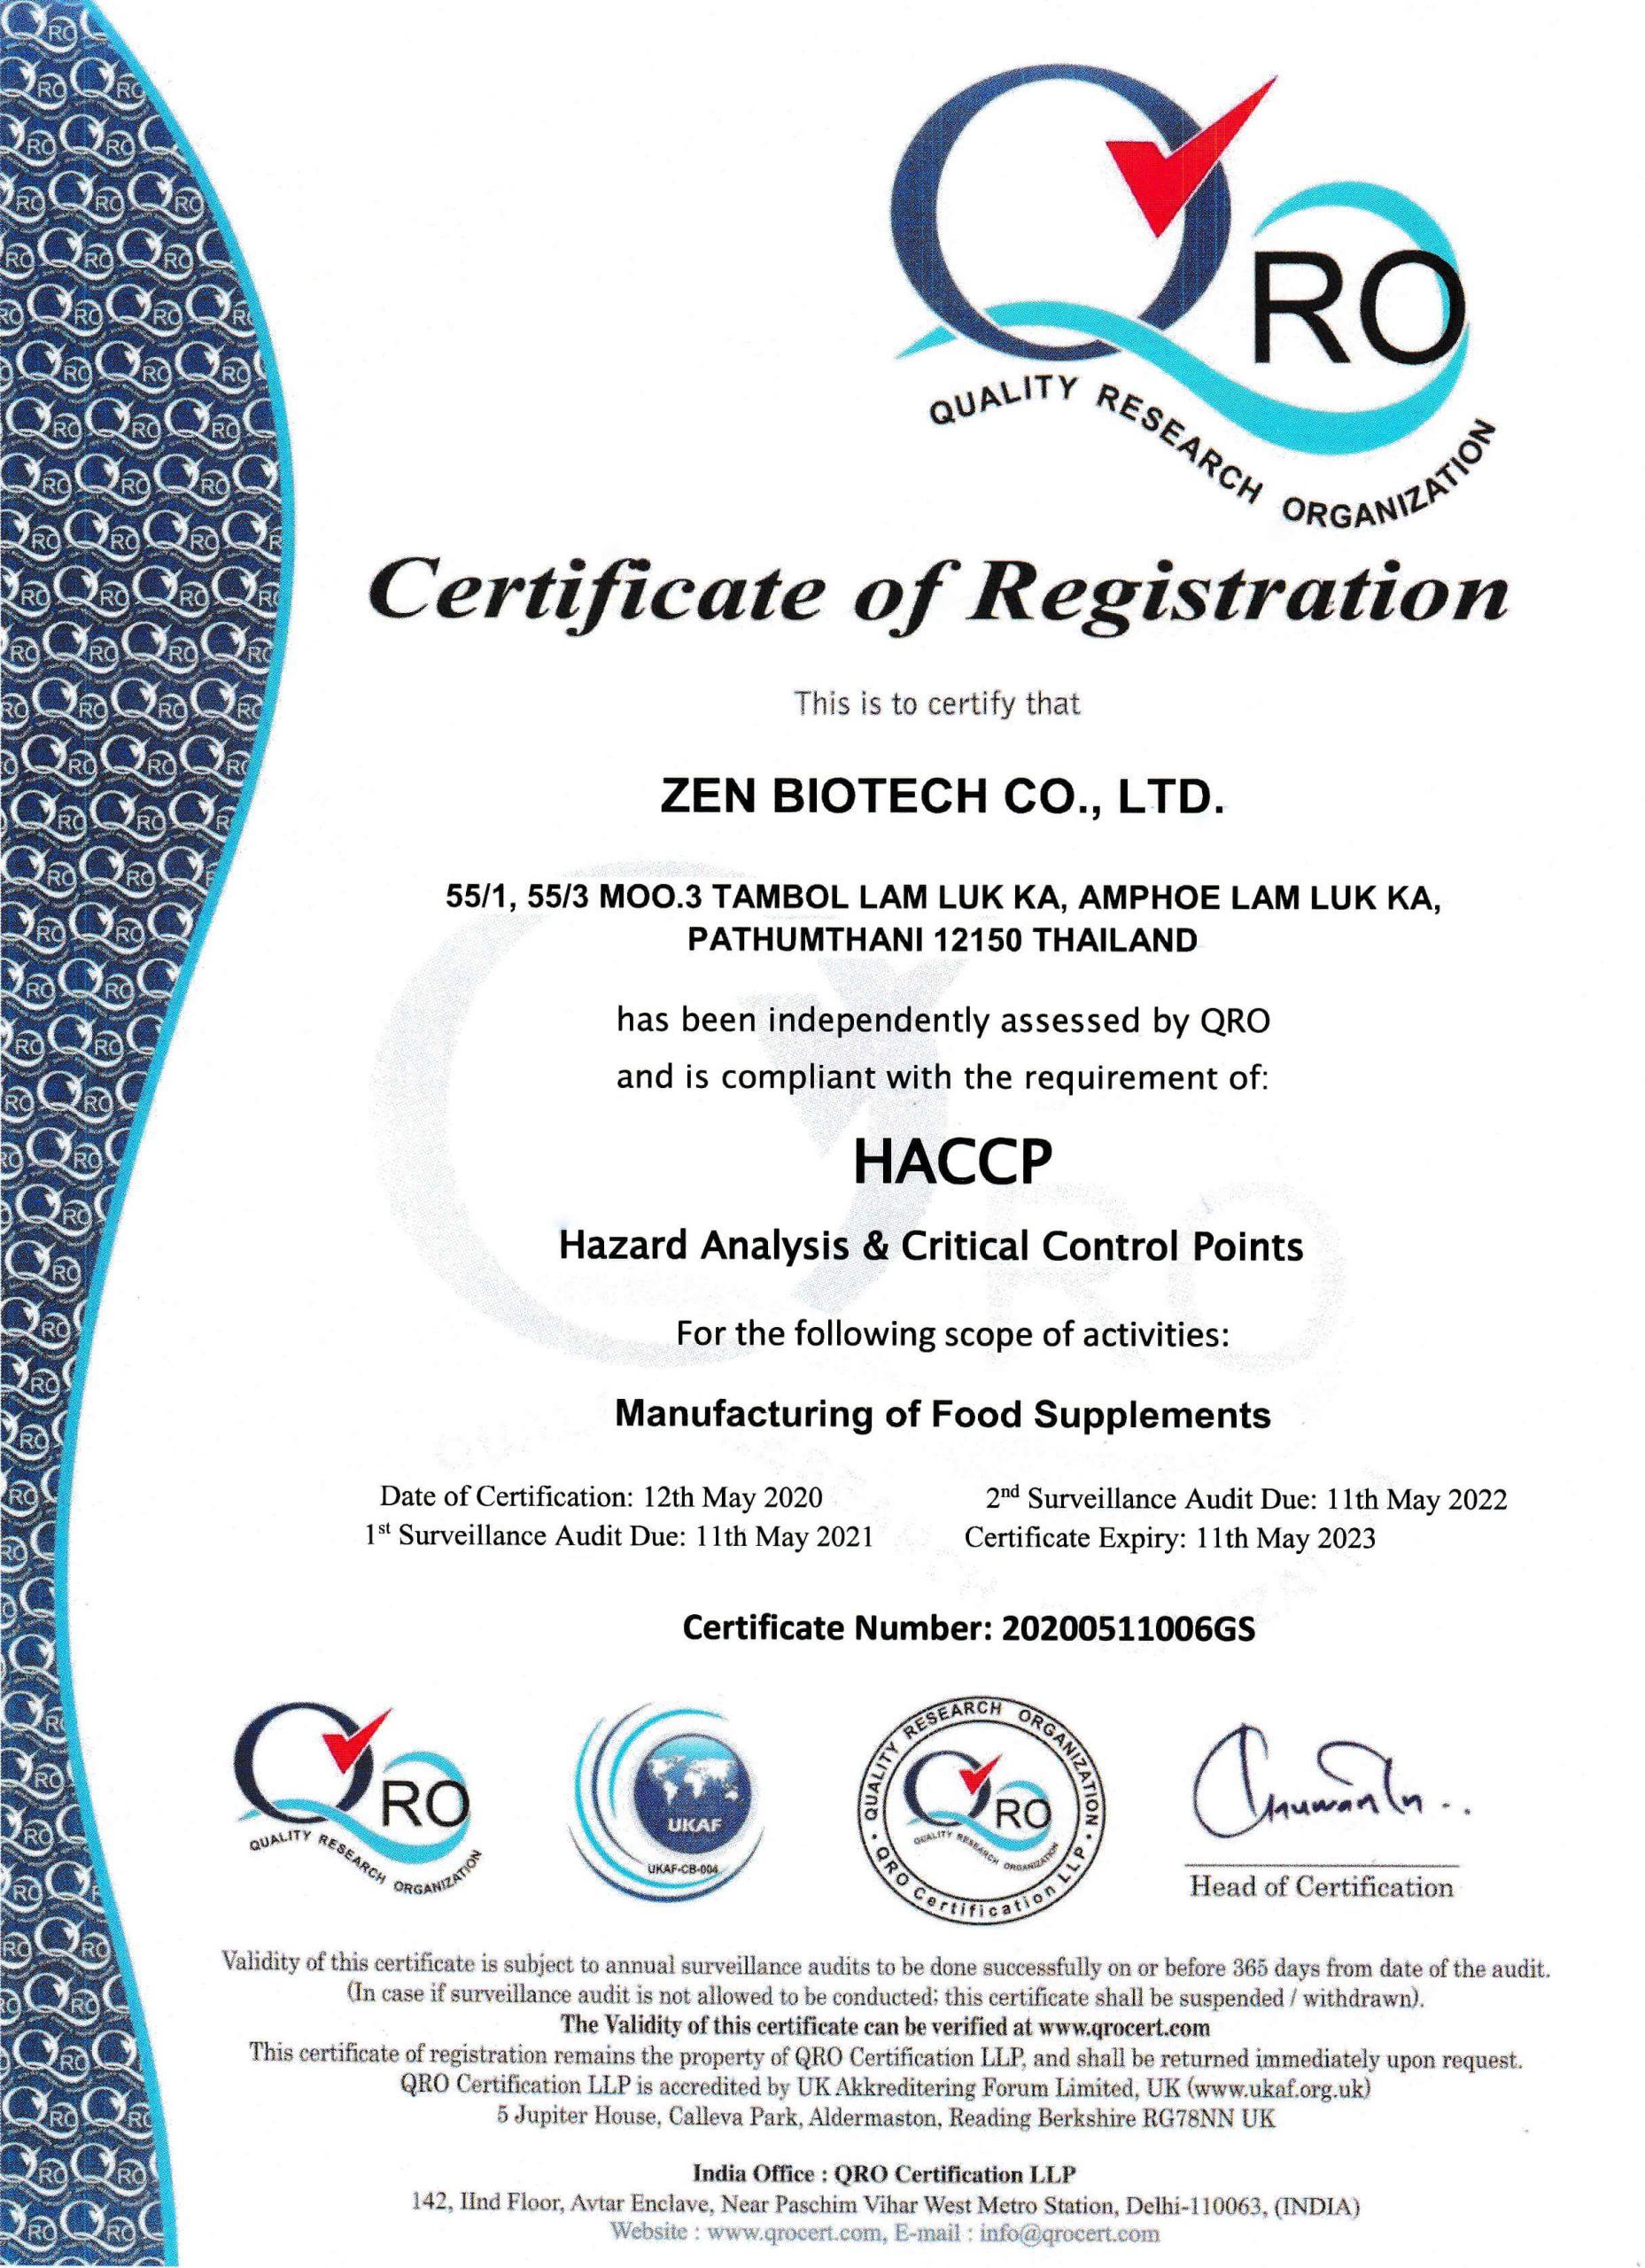 HACCP-scaled